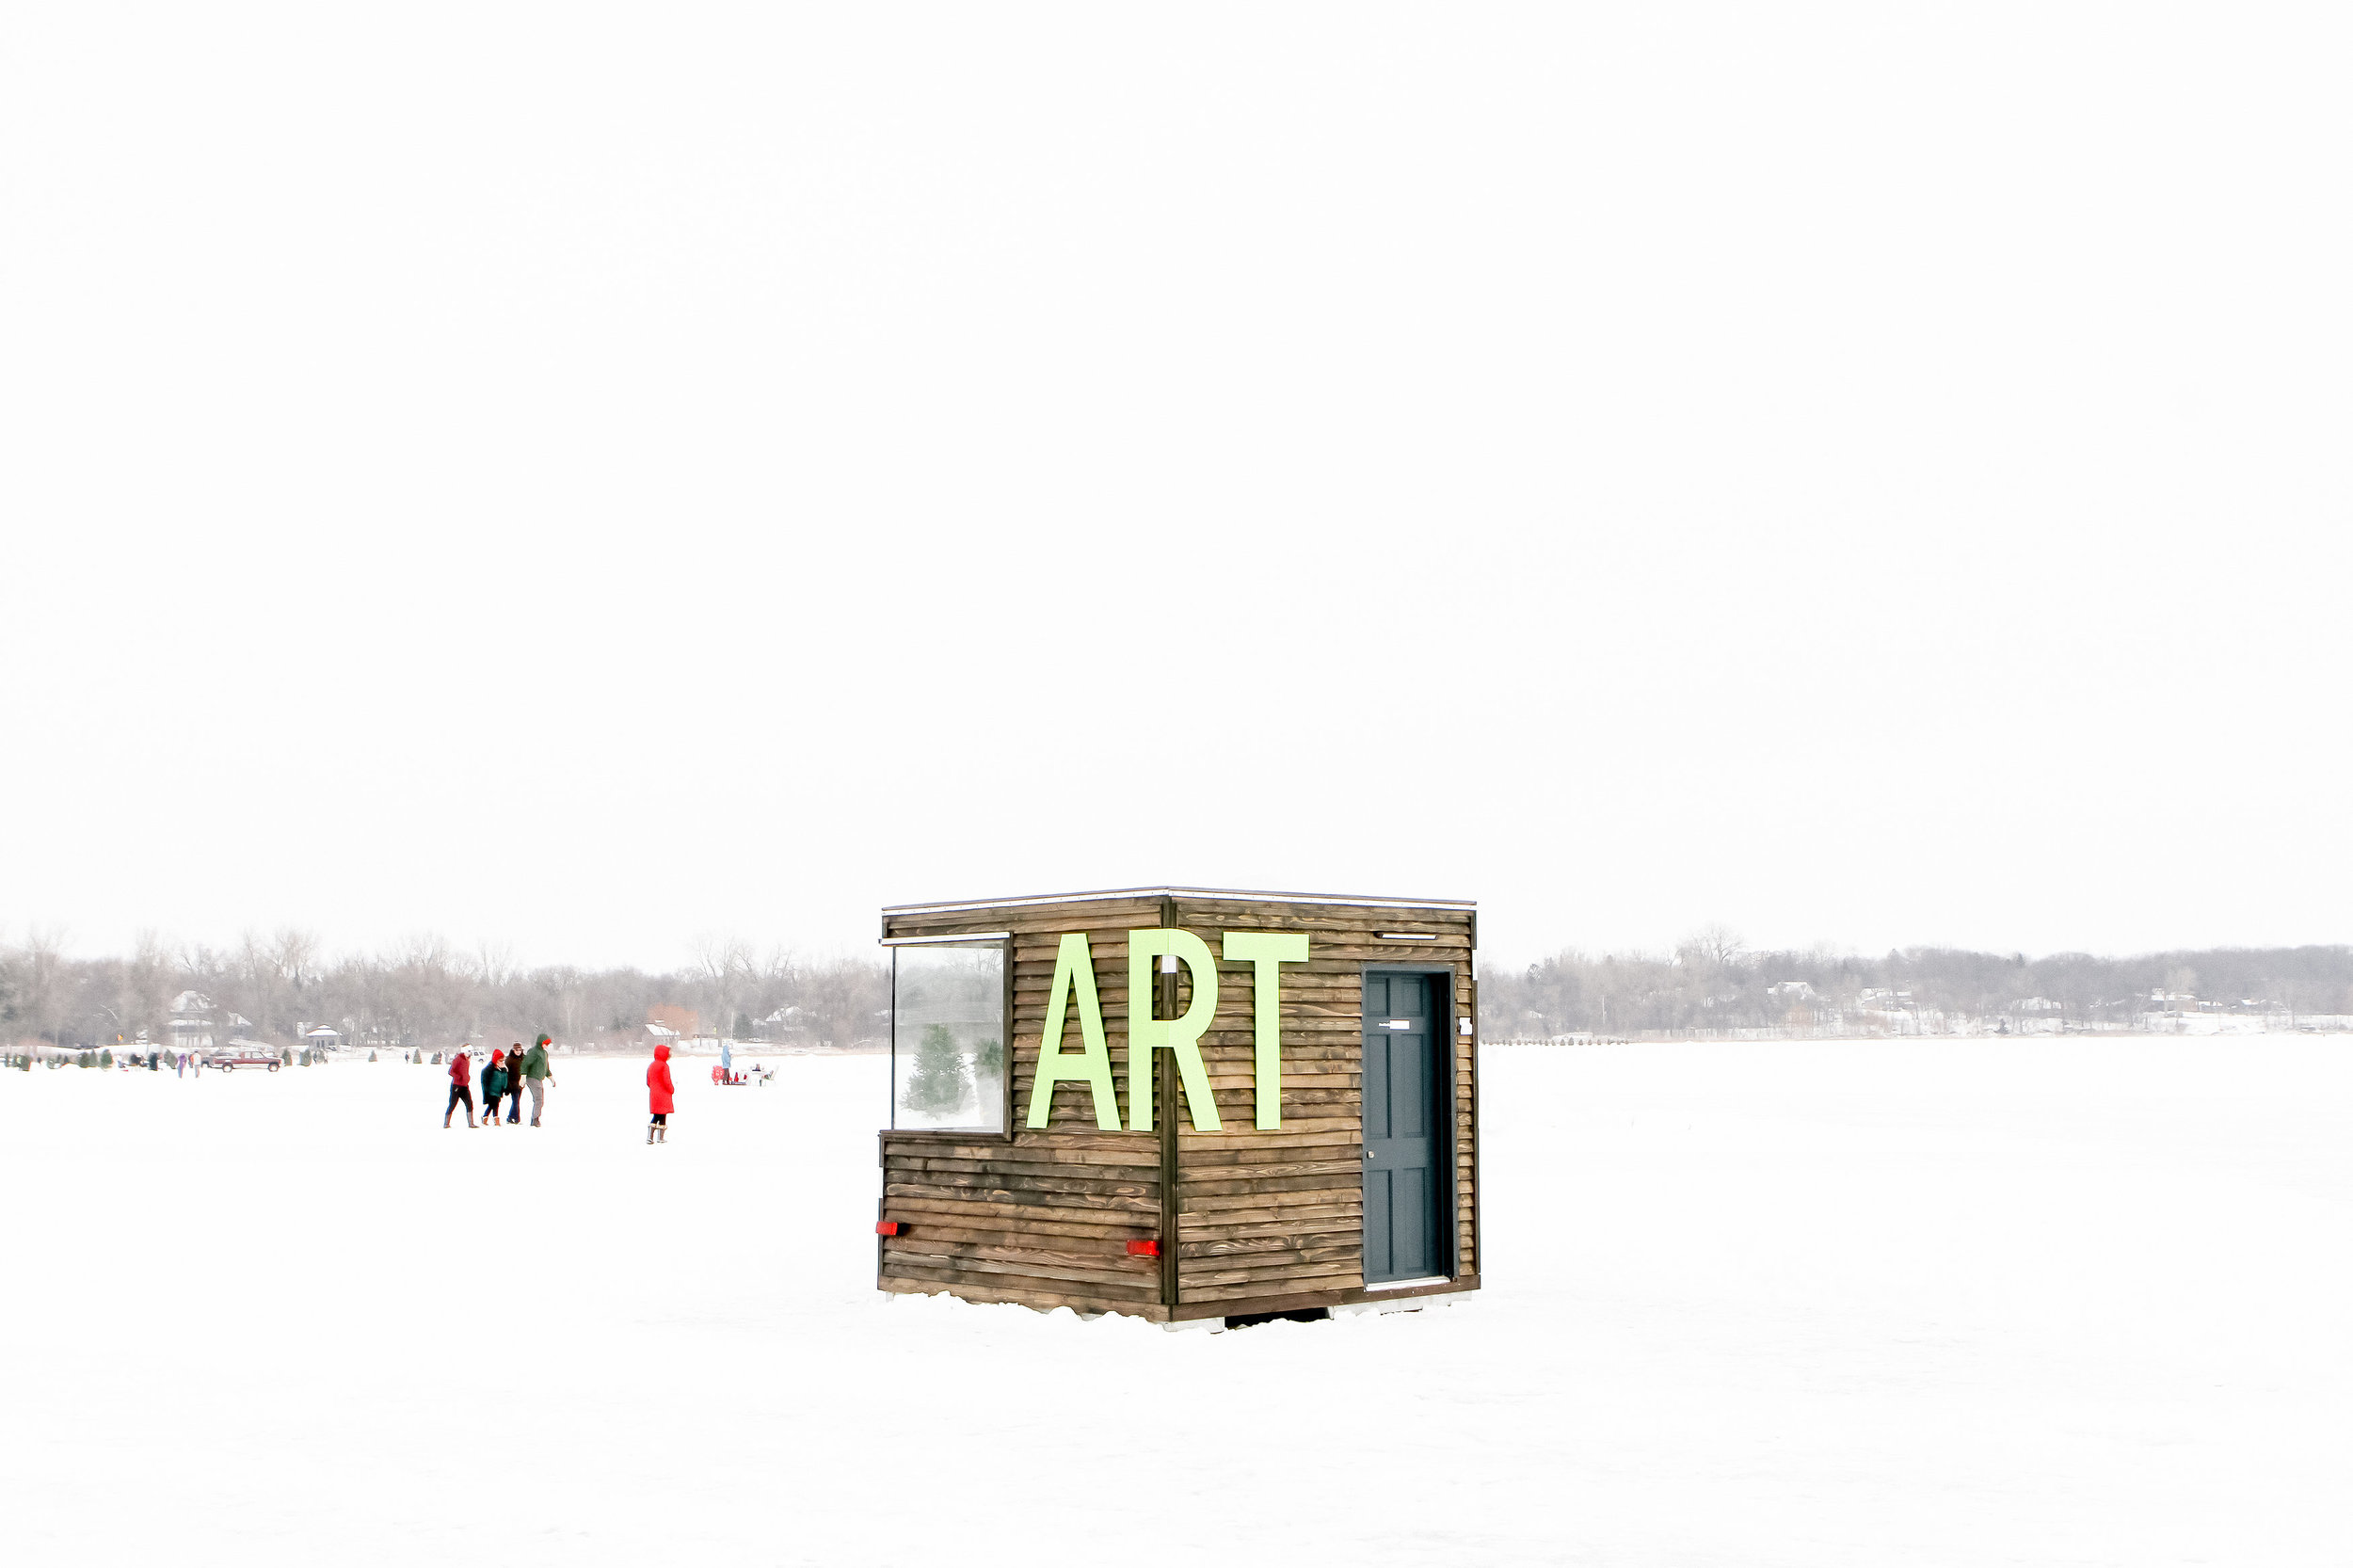 NewStudio Architecture's art shanty let visitors interact with artists inside the compact studio